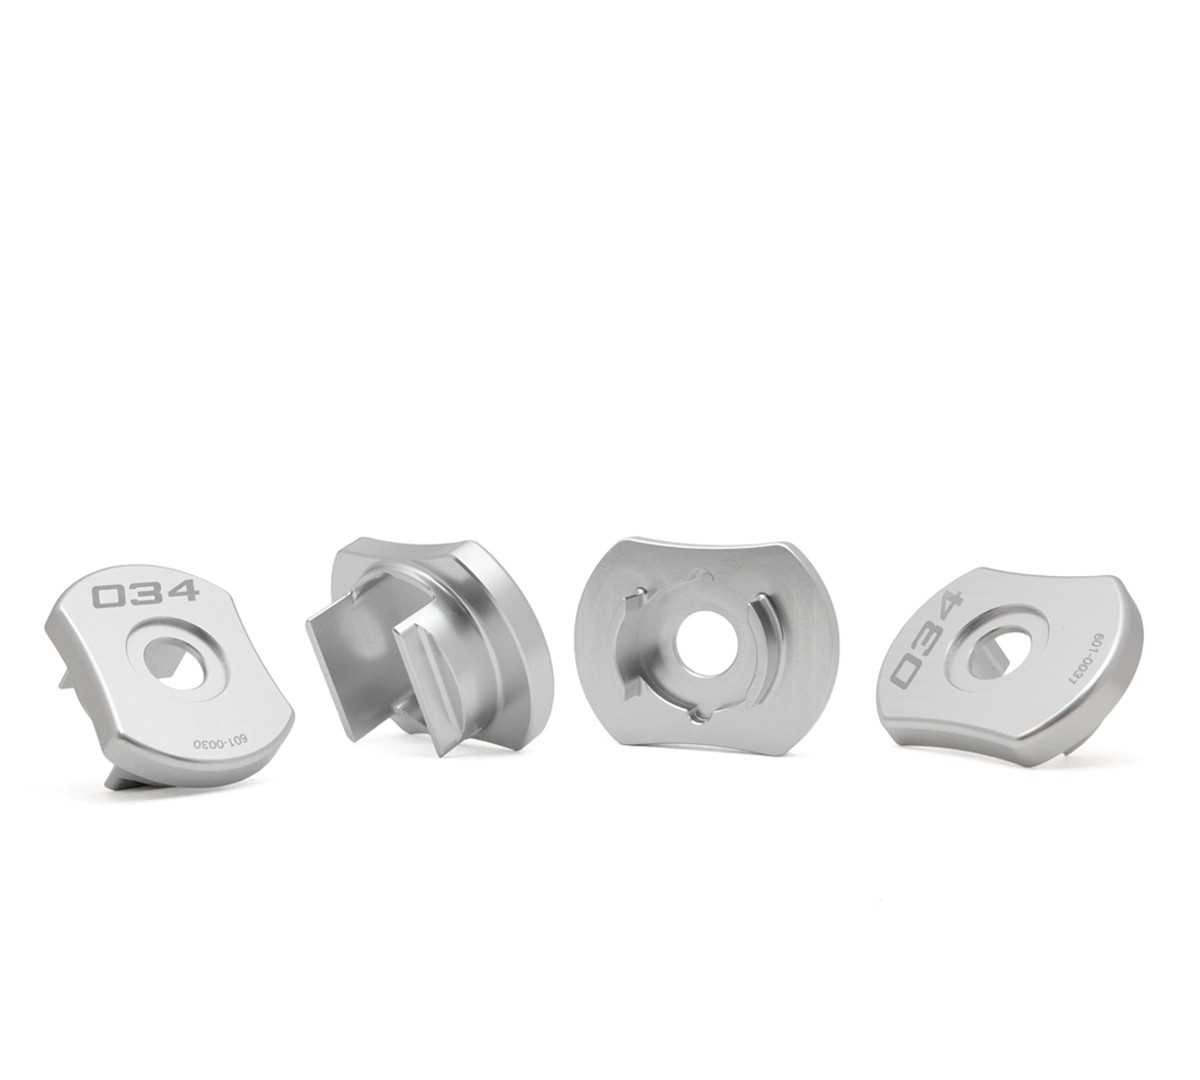 Billet Aluminum Rear Subframe Mount Inserts For MQB